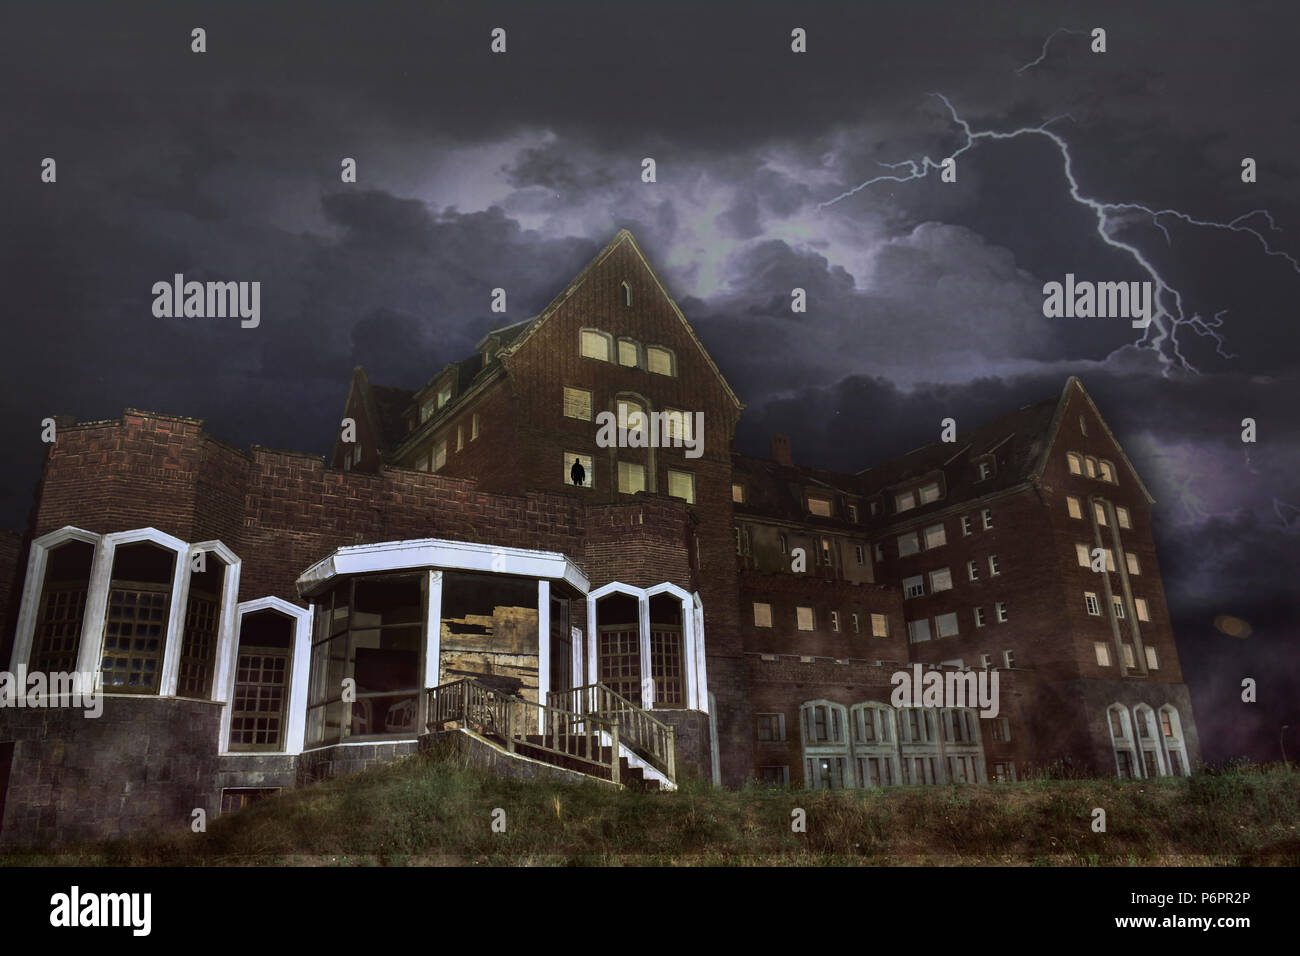 Ruins of what used to be a great hotel casino in Punta del Este, Uruguay. It is abandoned nowadays and looks creepy in stormy nights. - Stock Image